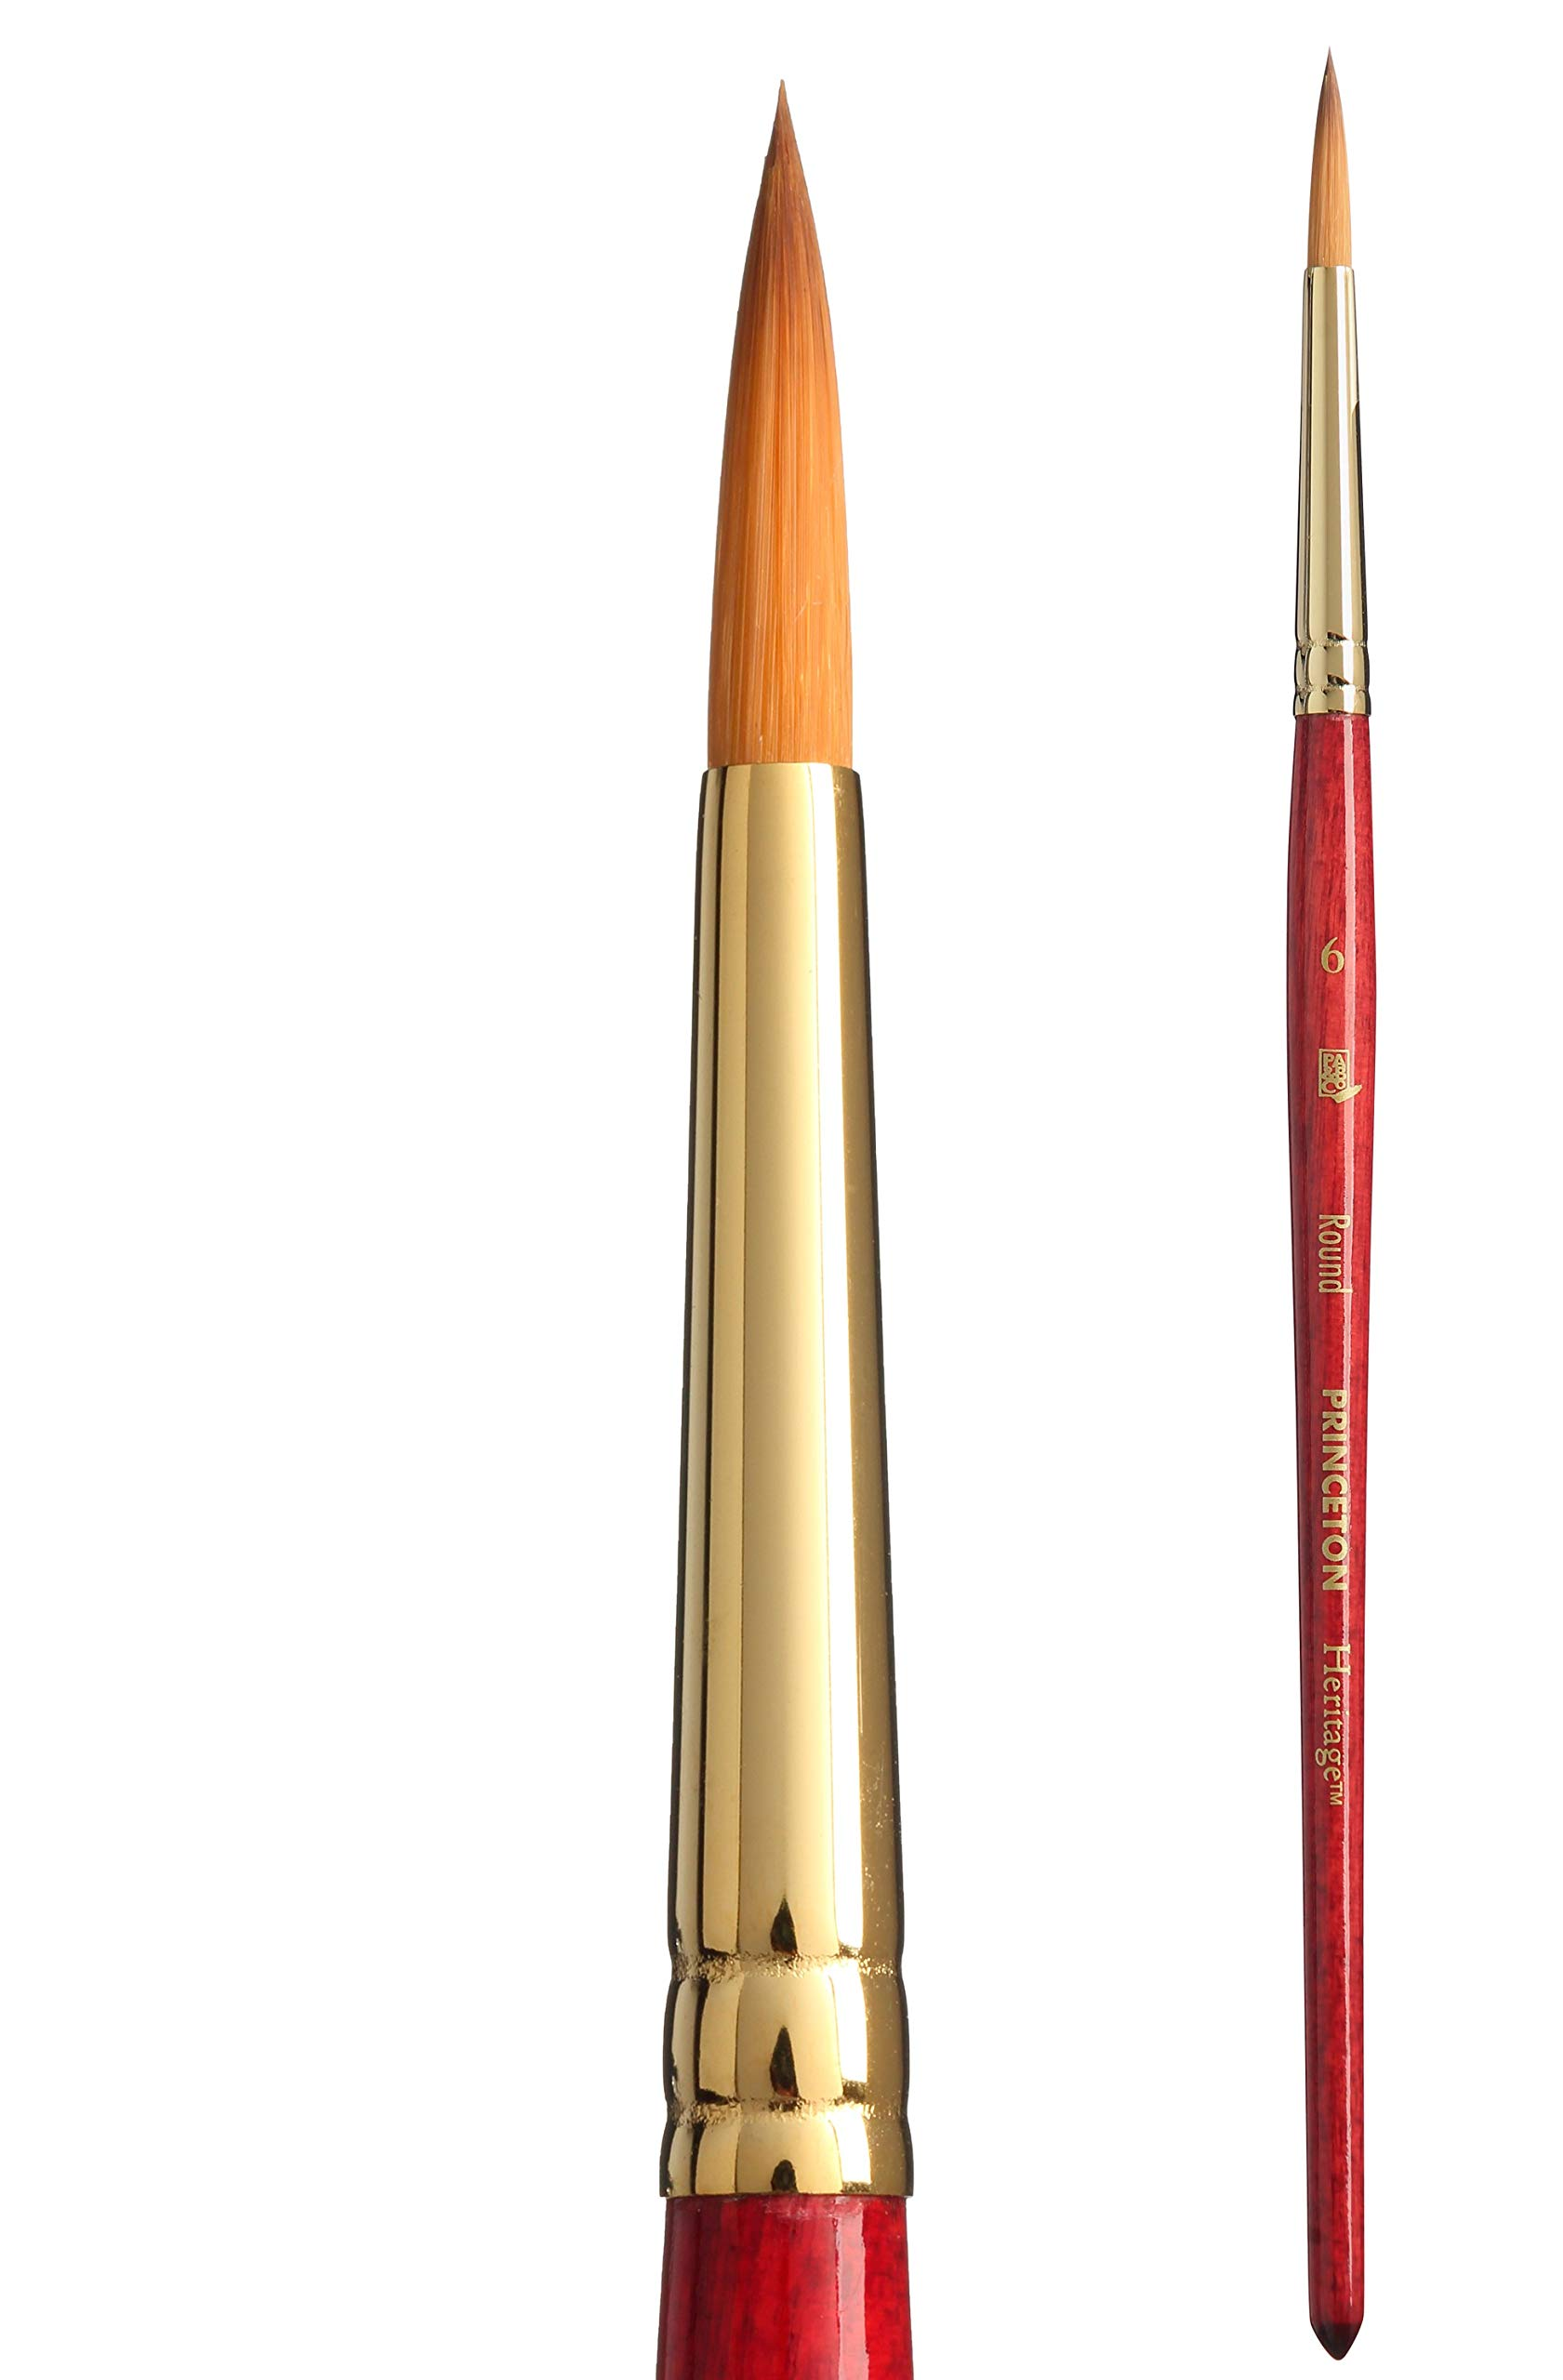 Princeton Heritage, Series 4050, Synthetic Sable Paint Brush for Watercolor, Round, 6